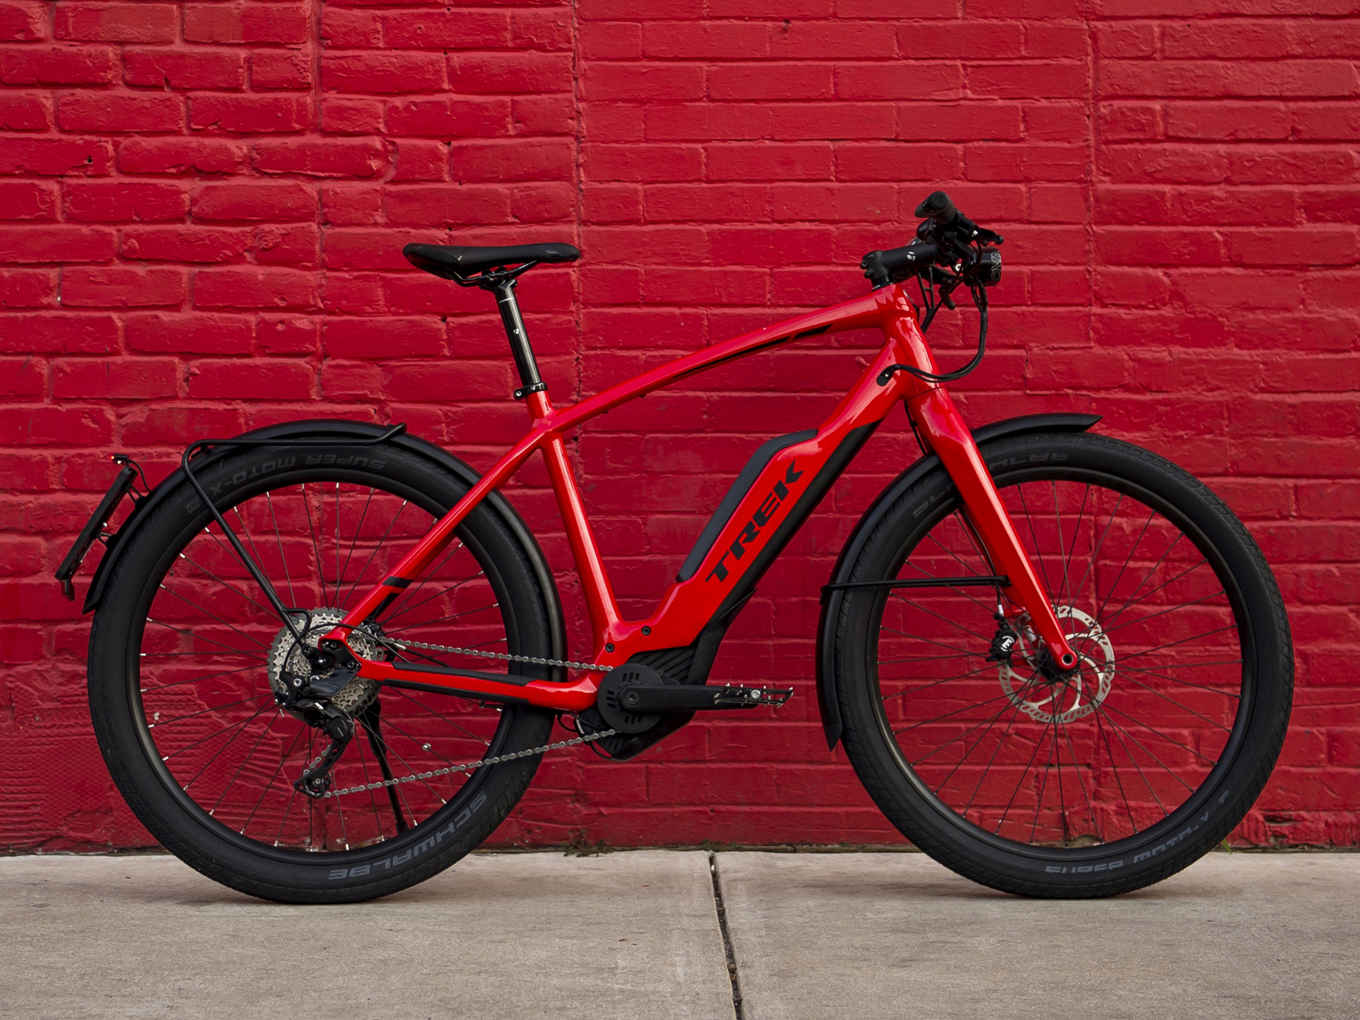 Trek SuperCommuter+ 8S - Class 3 (Pedal assist only, up to 28mph)